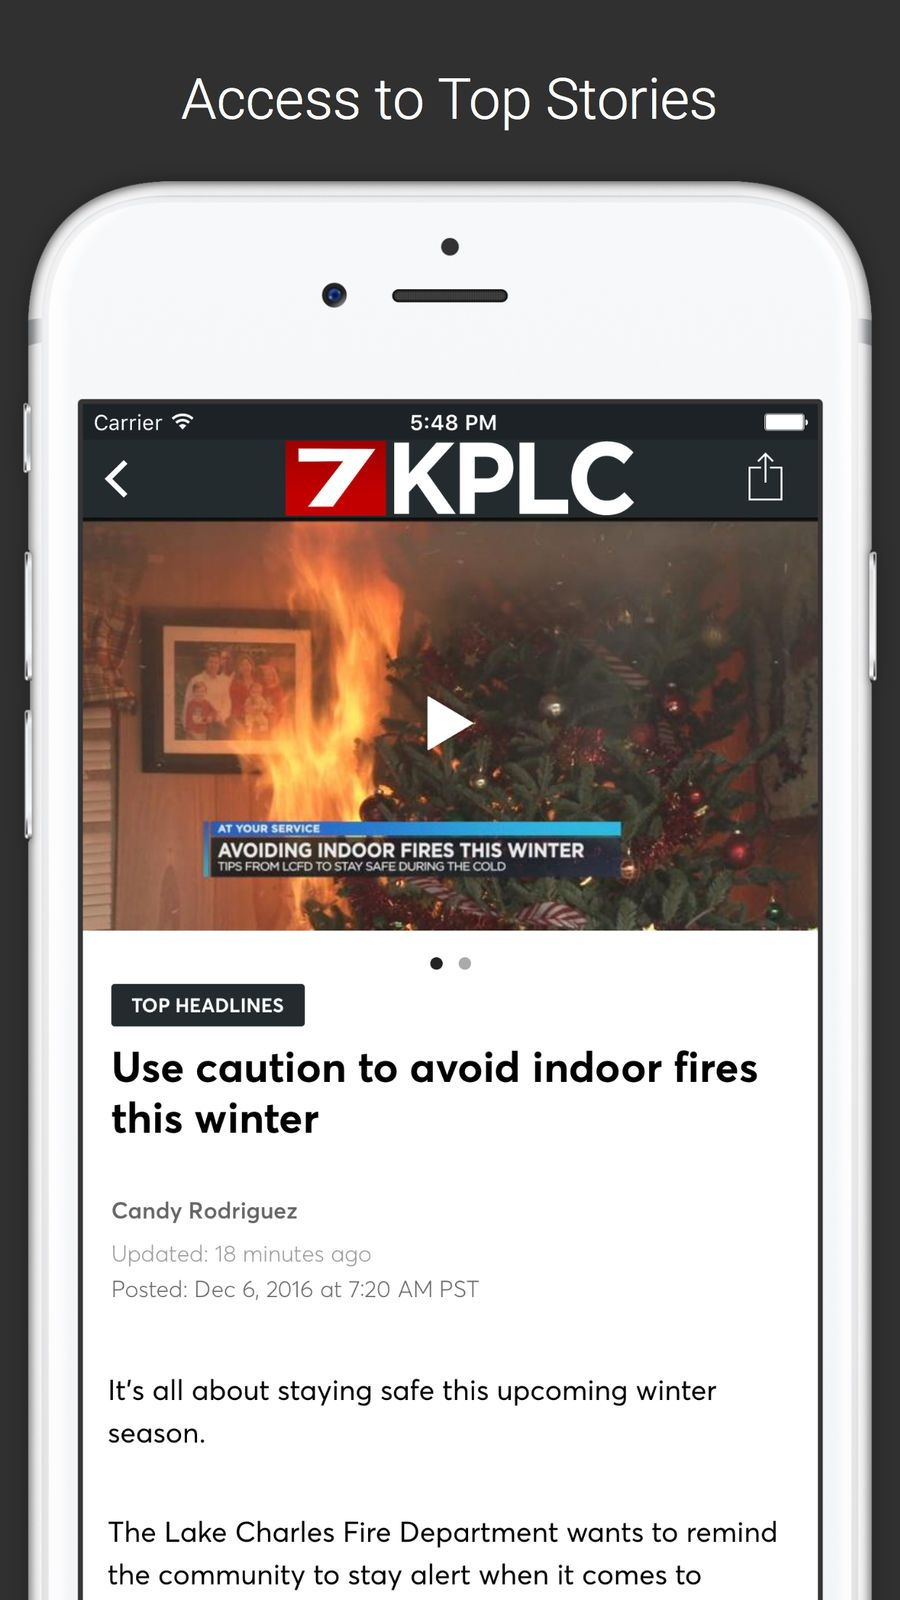 Kplc 7 News Ios Apps App Weather Apples To Apples Game Games To Play App